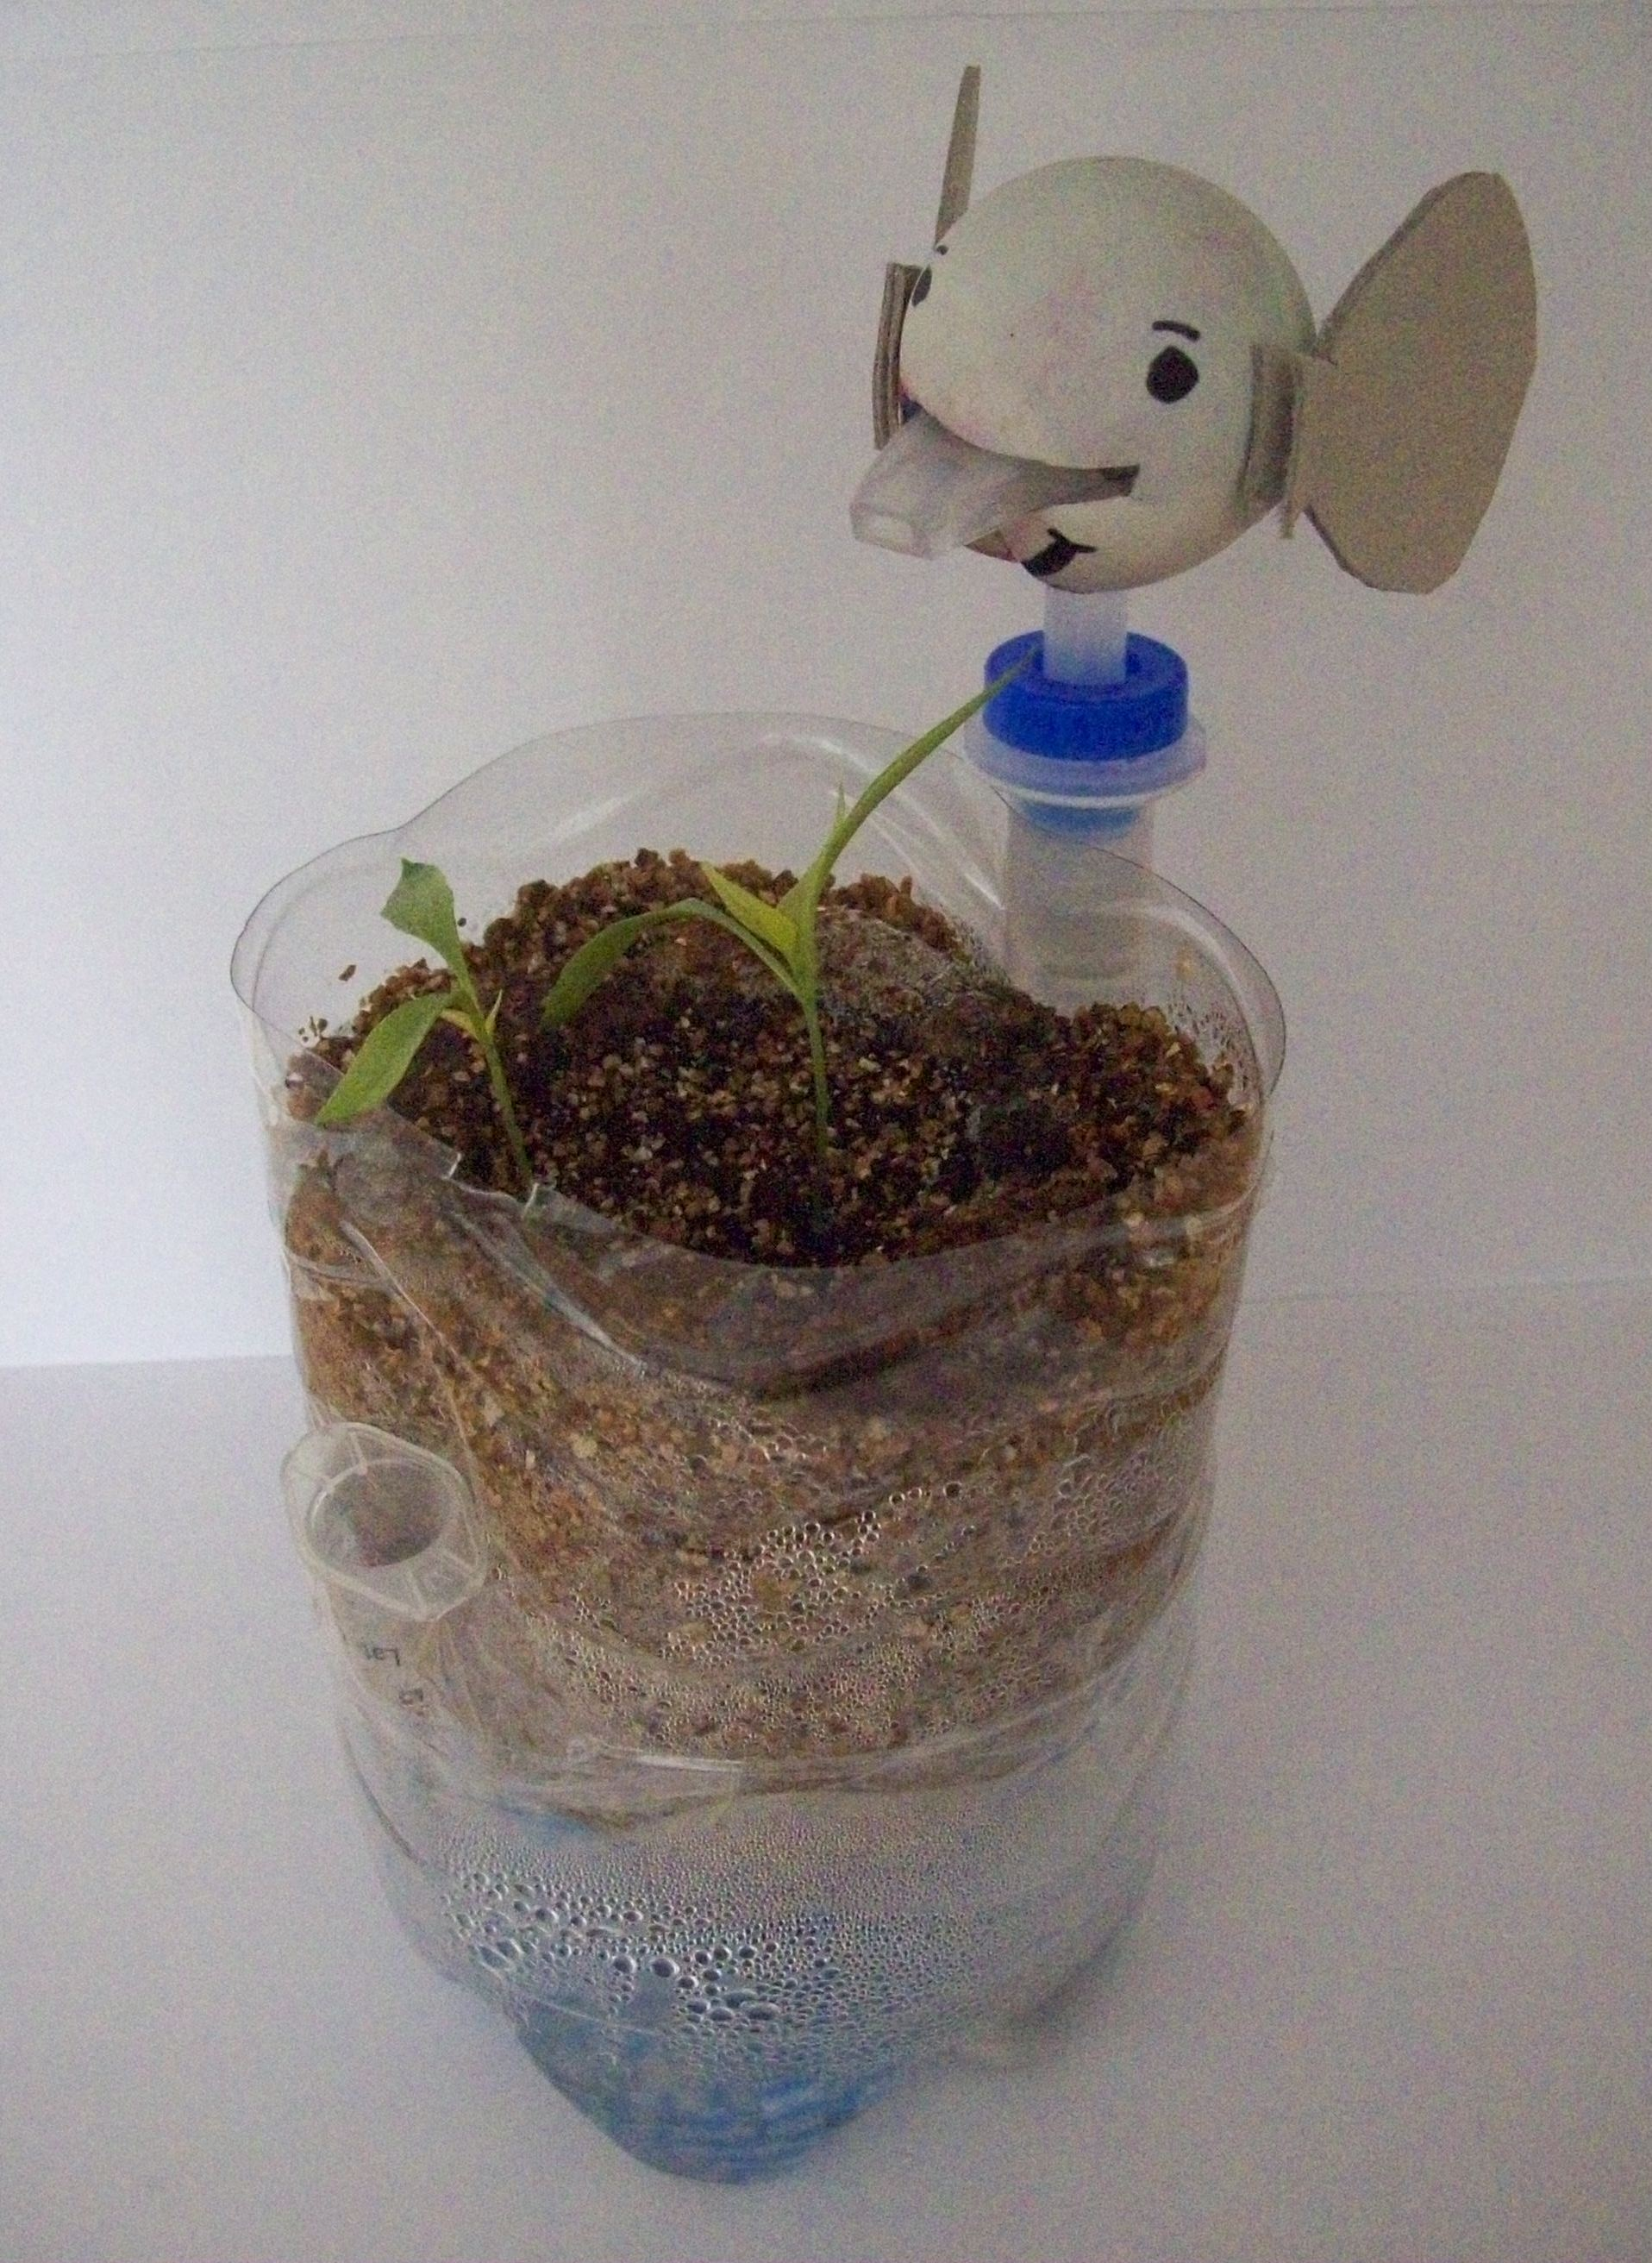 Picture of 'Eleplant' Indoor Hydroponic Planter